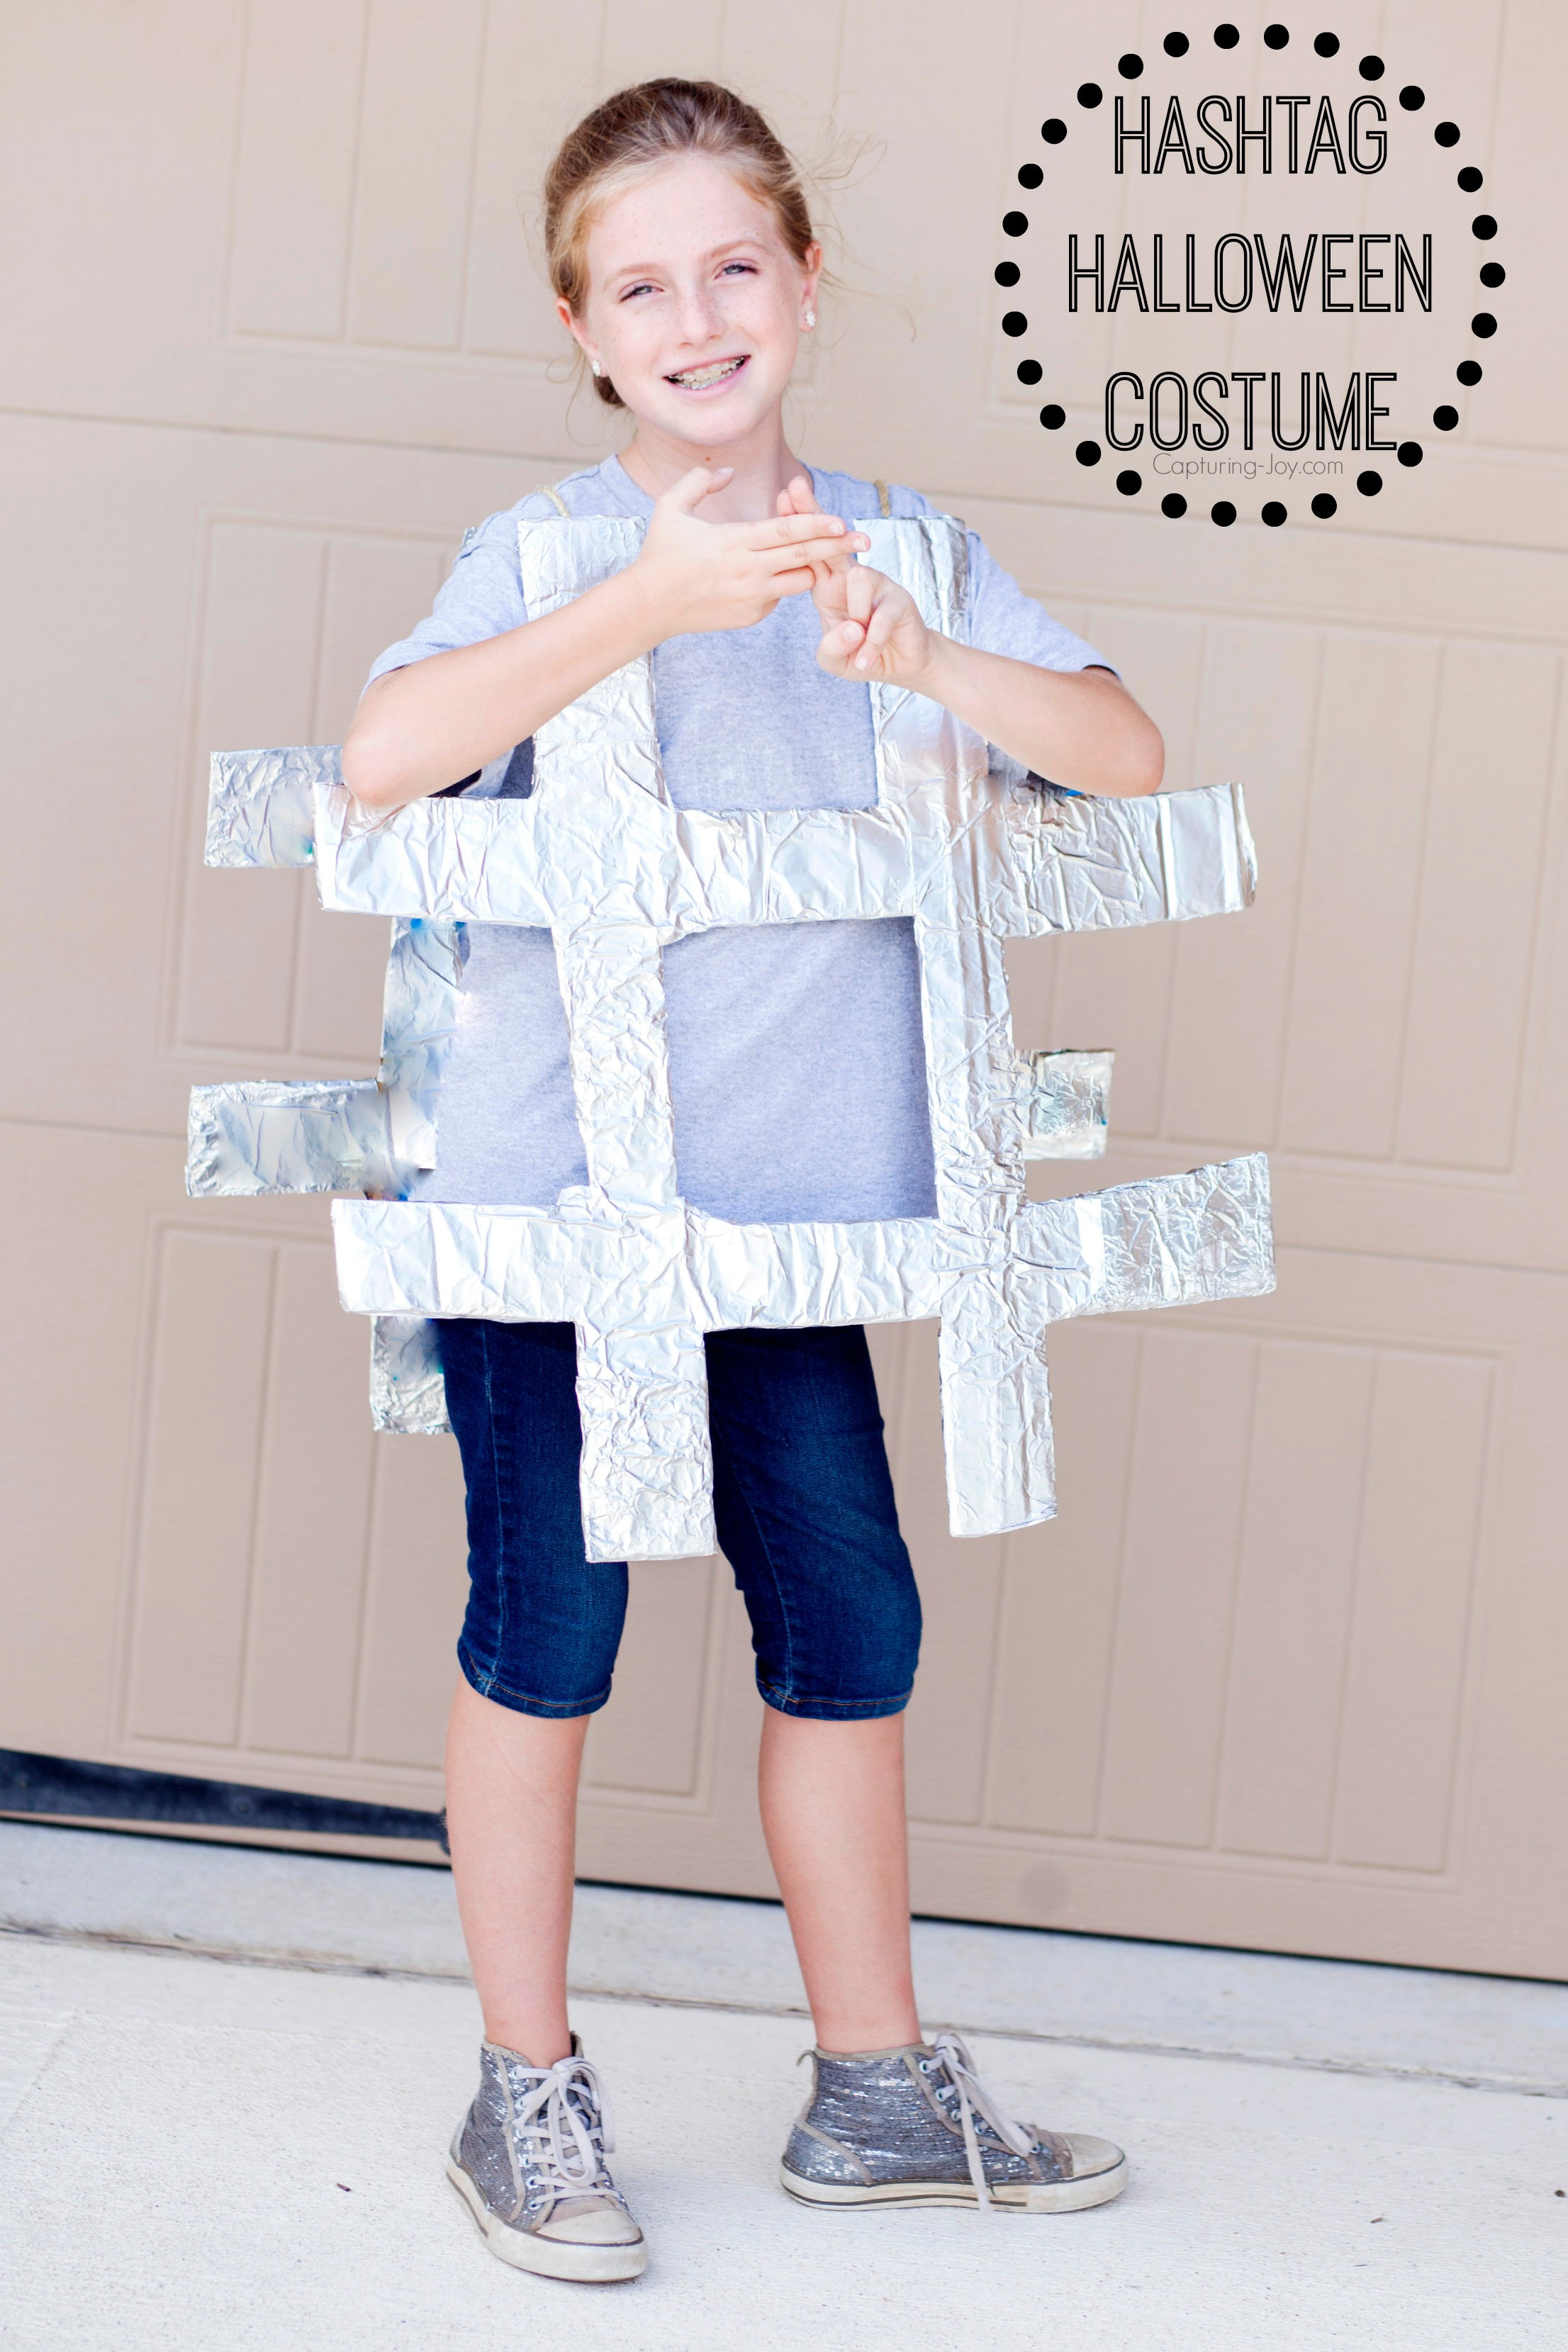 Diy hashtag halloween costume solutioingenieria Choice Image